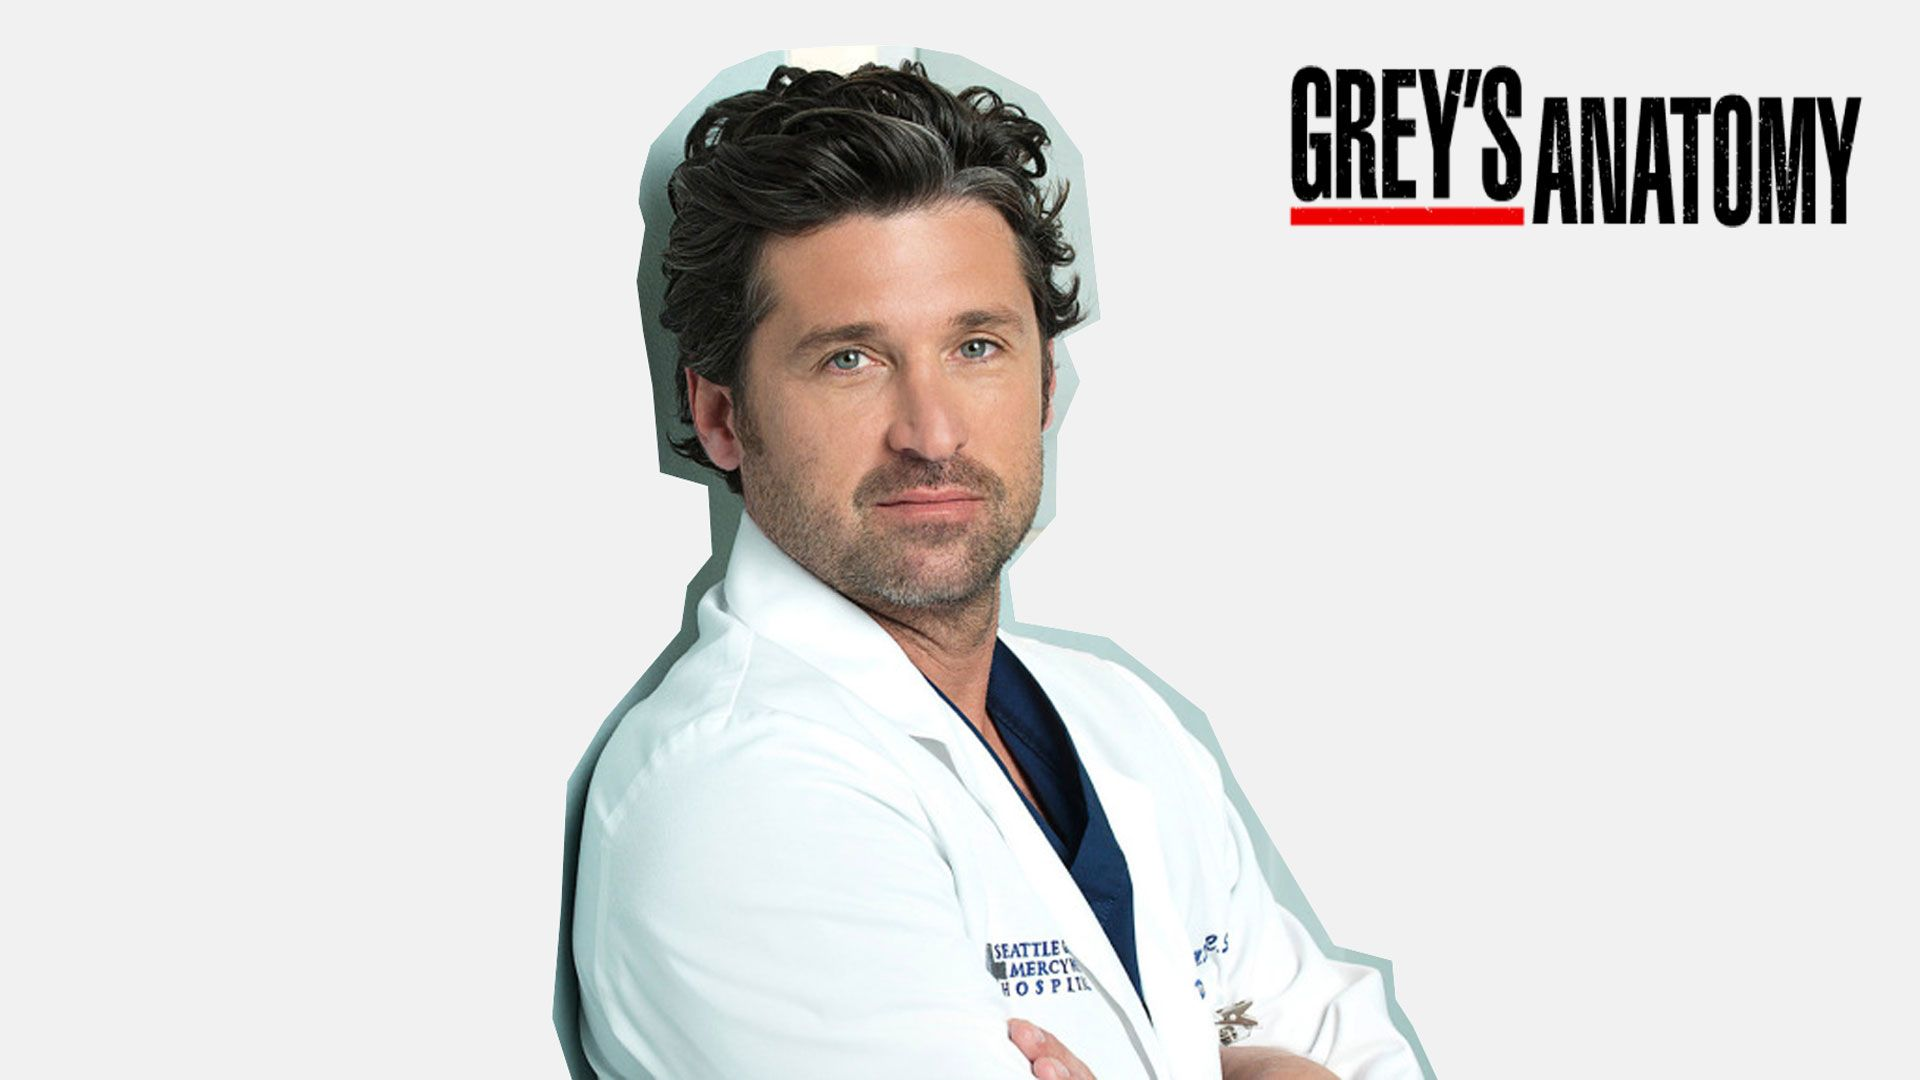 McDreamy Grey's Anatomy